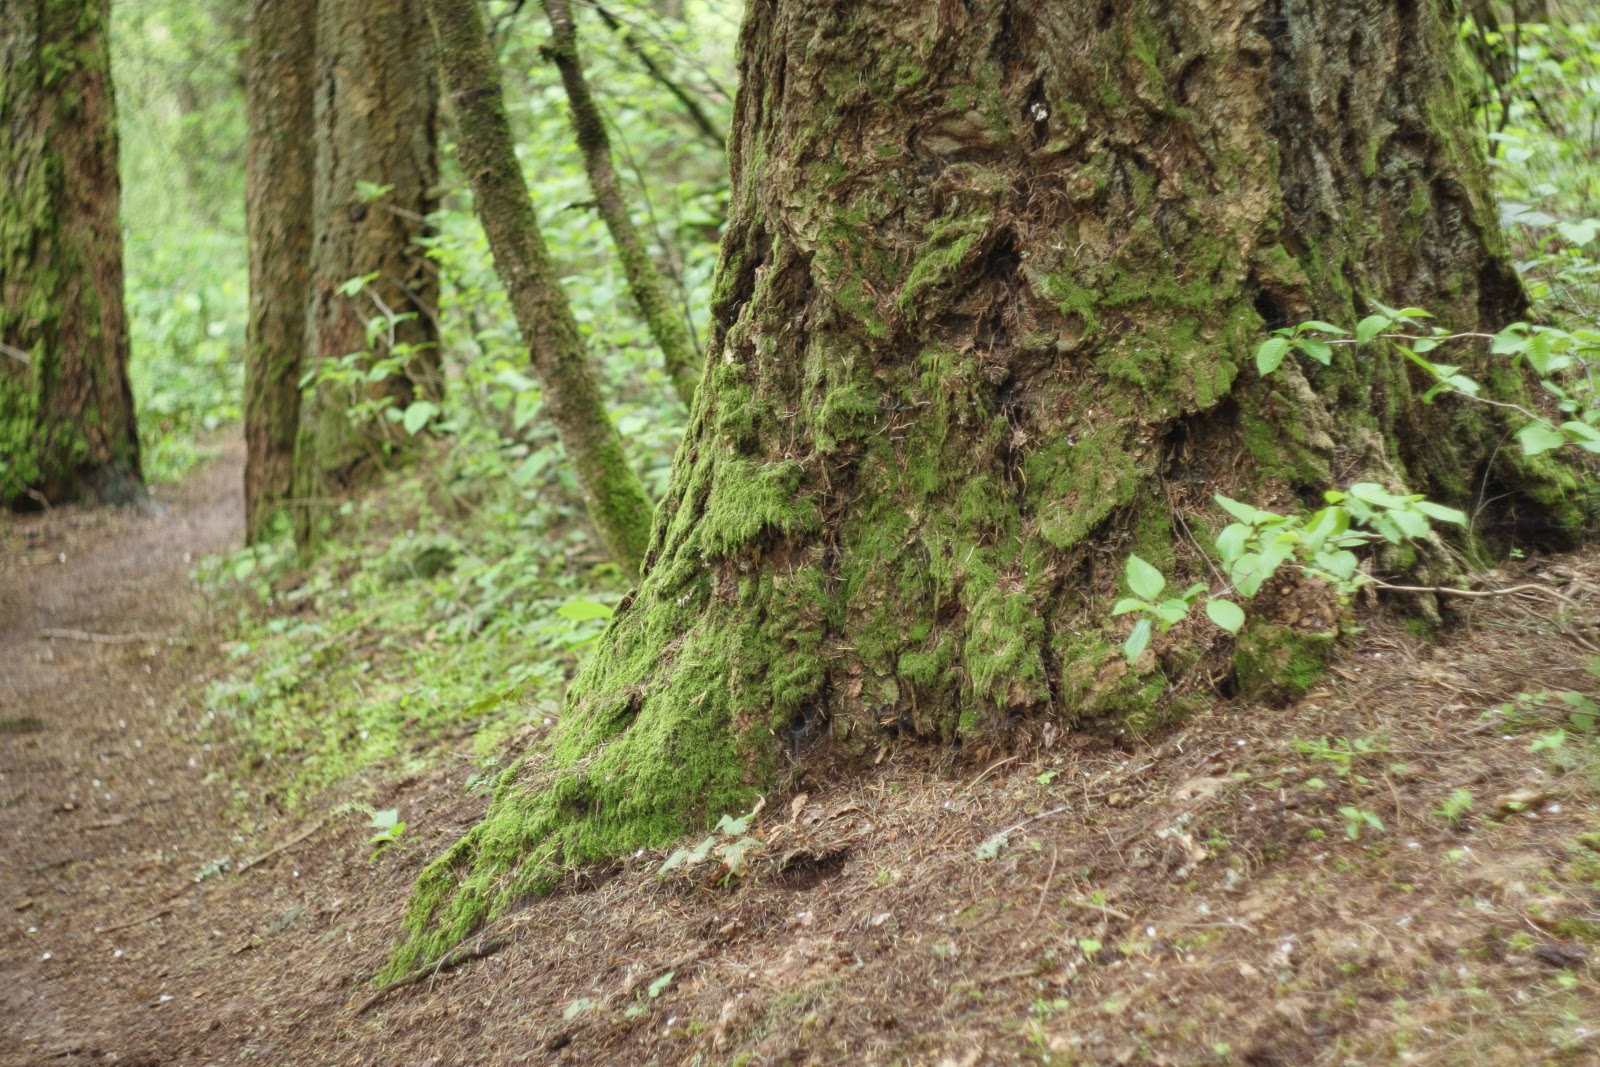 Douglas fir trunk, A Day in the Life, Photo-A-Day April 2015, Day 13, by Lisa Miller